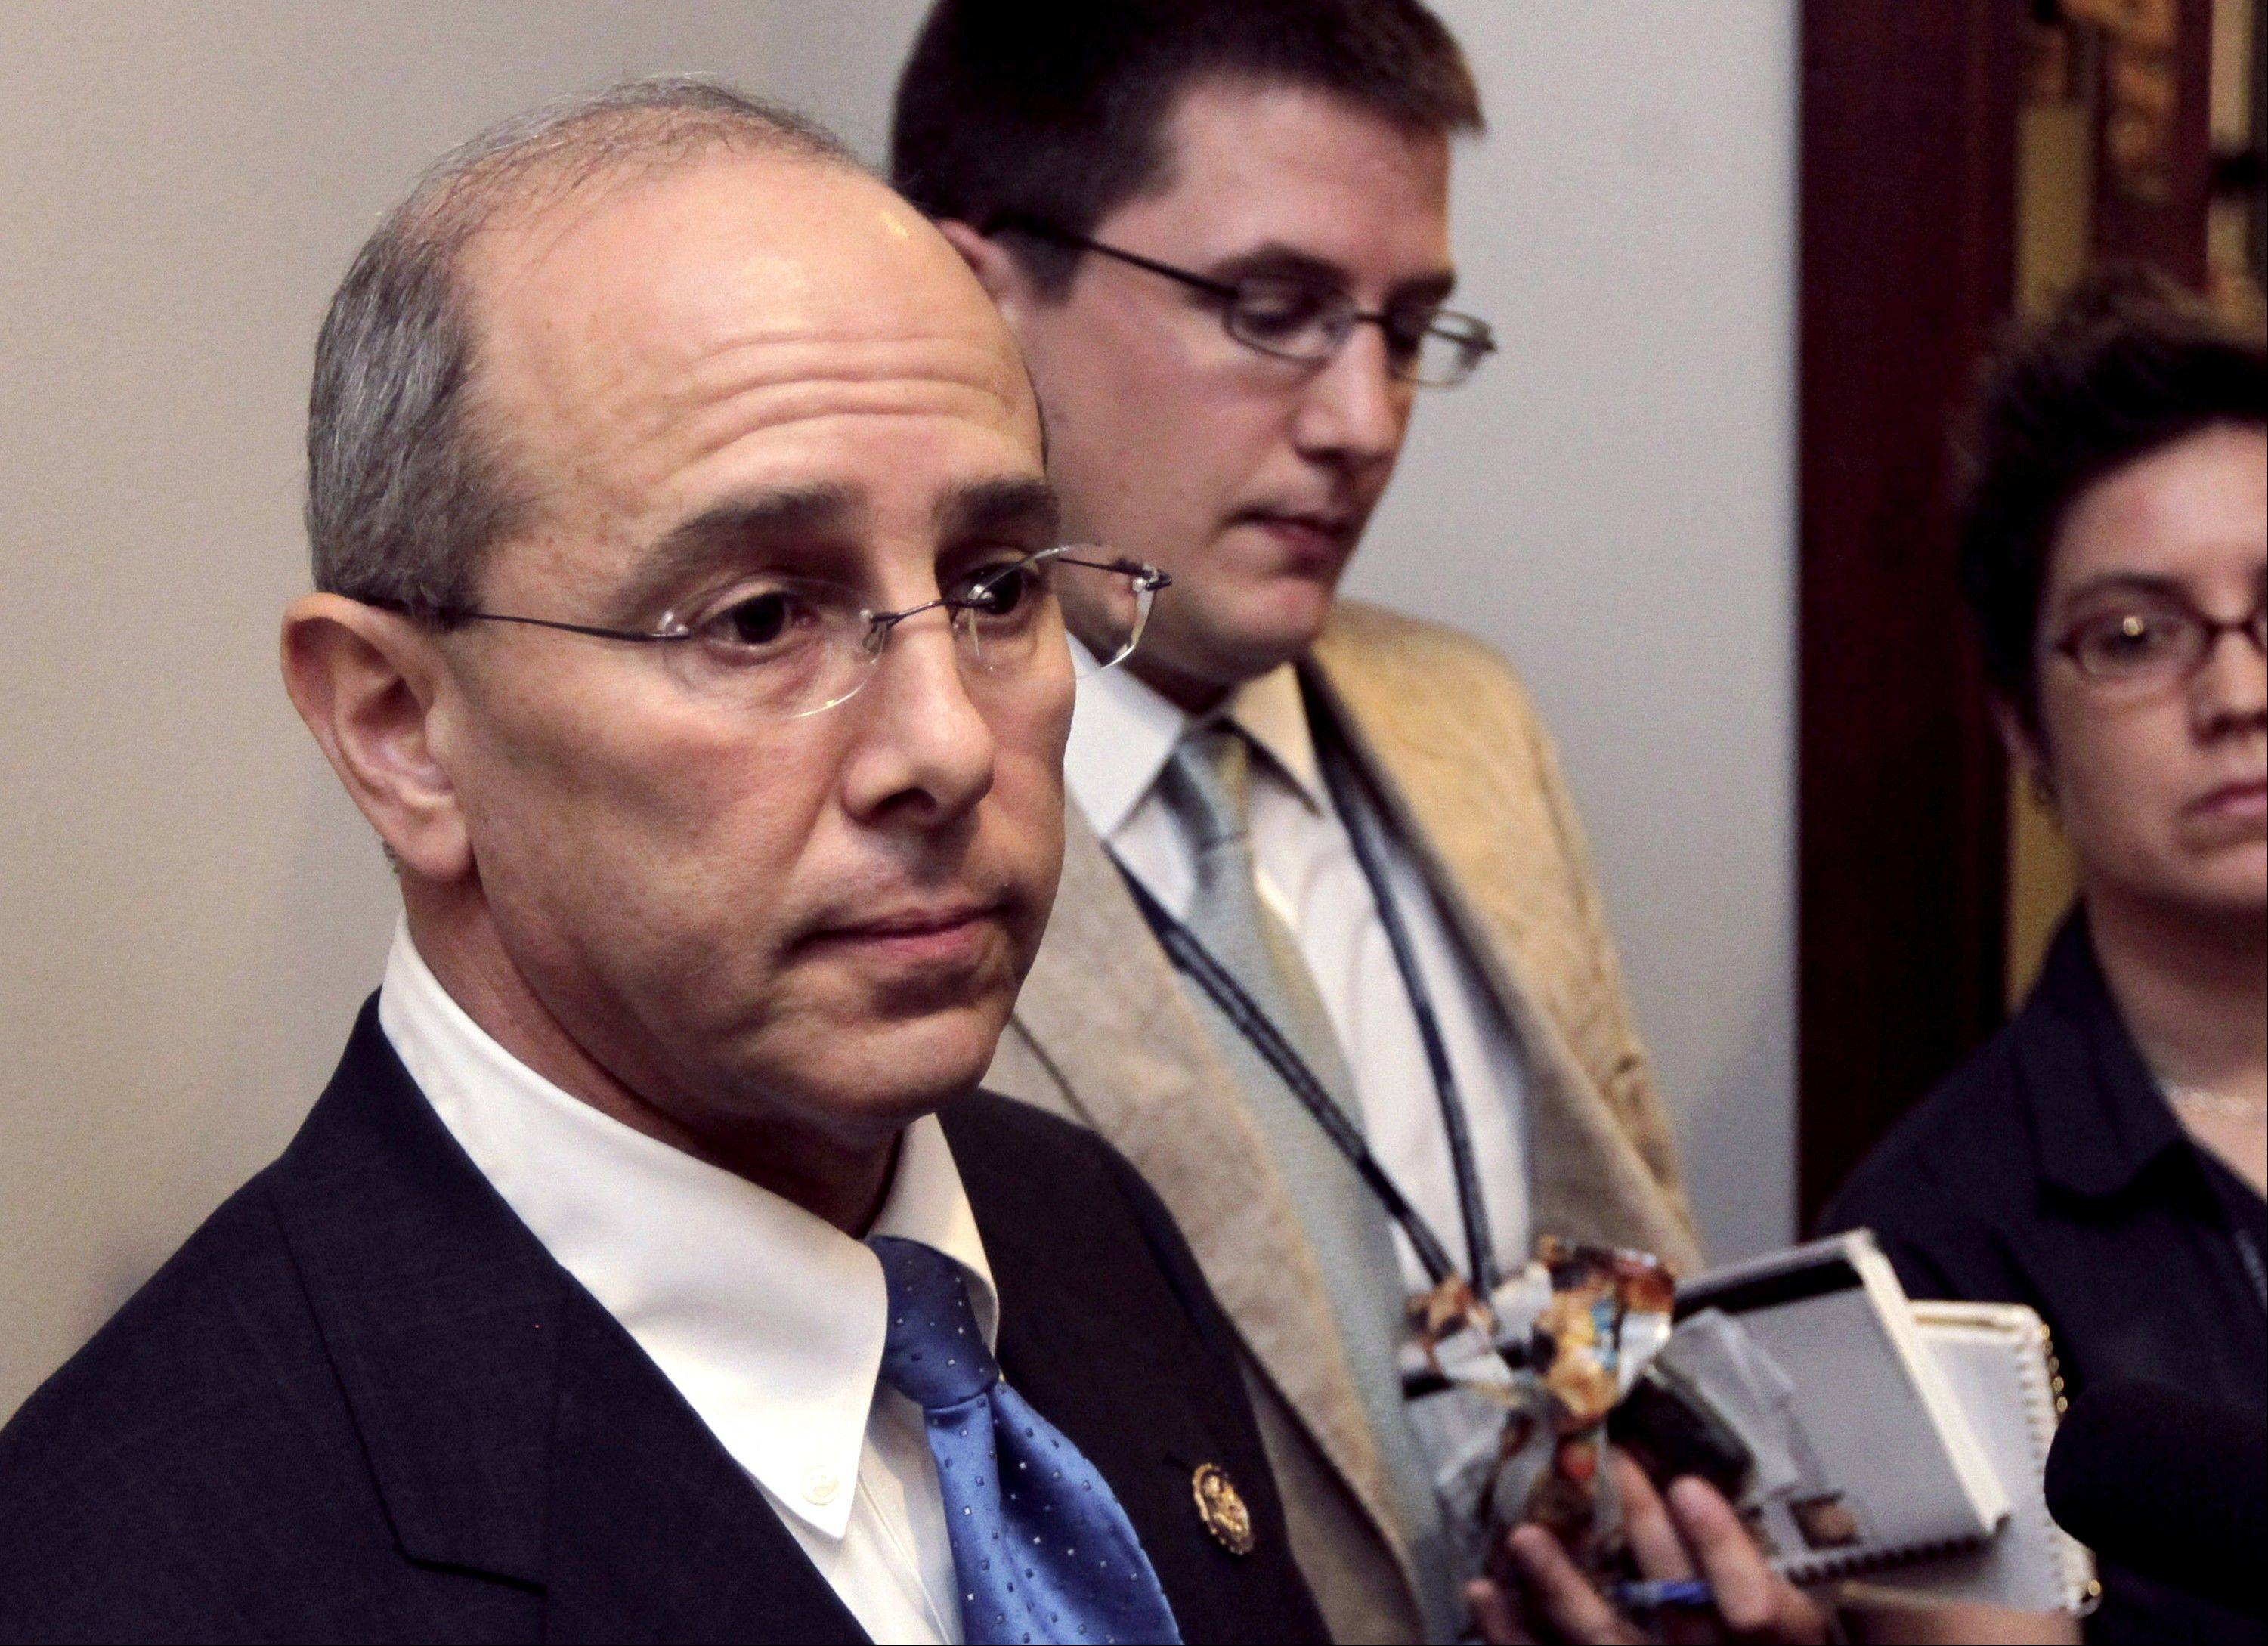 House Ways and Means Oversight subcommittee Chairman Rep. Charles Boustany